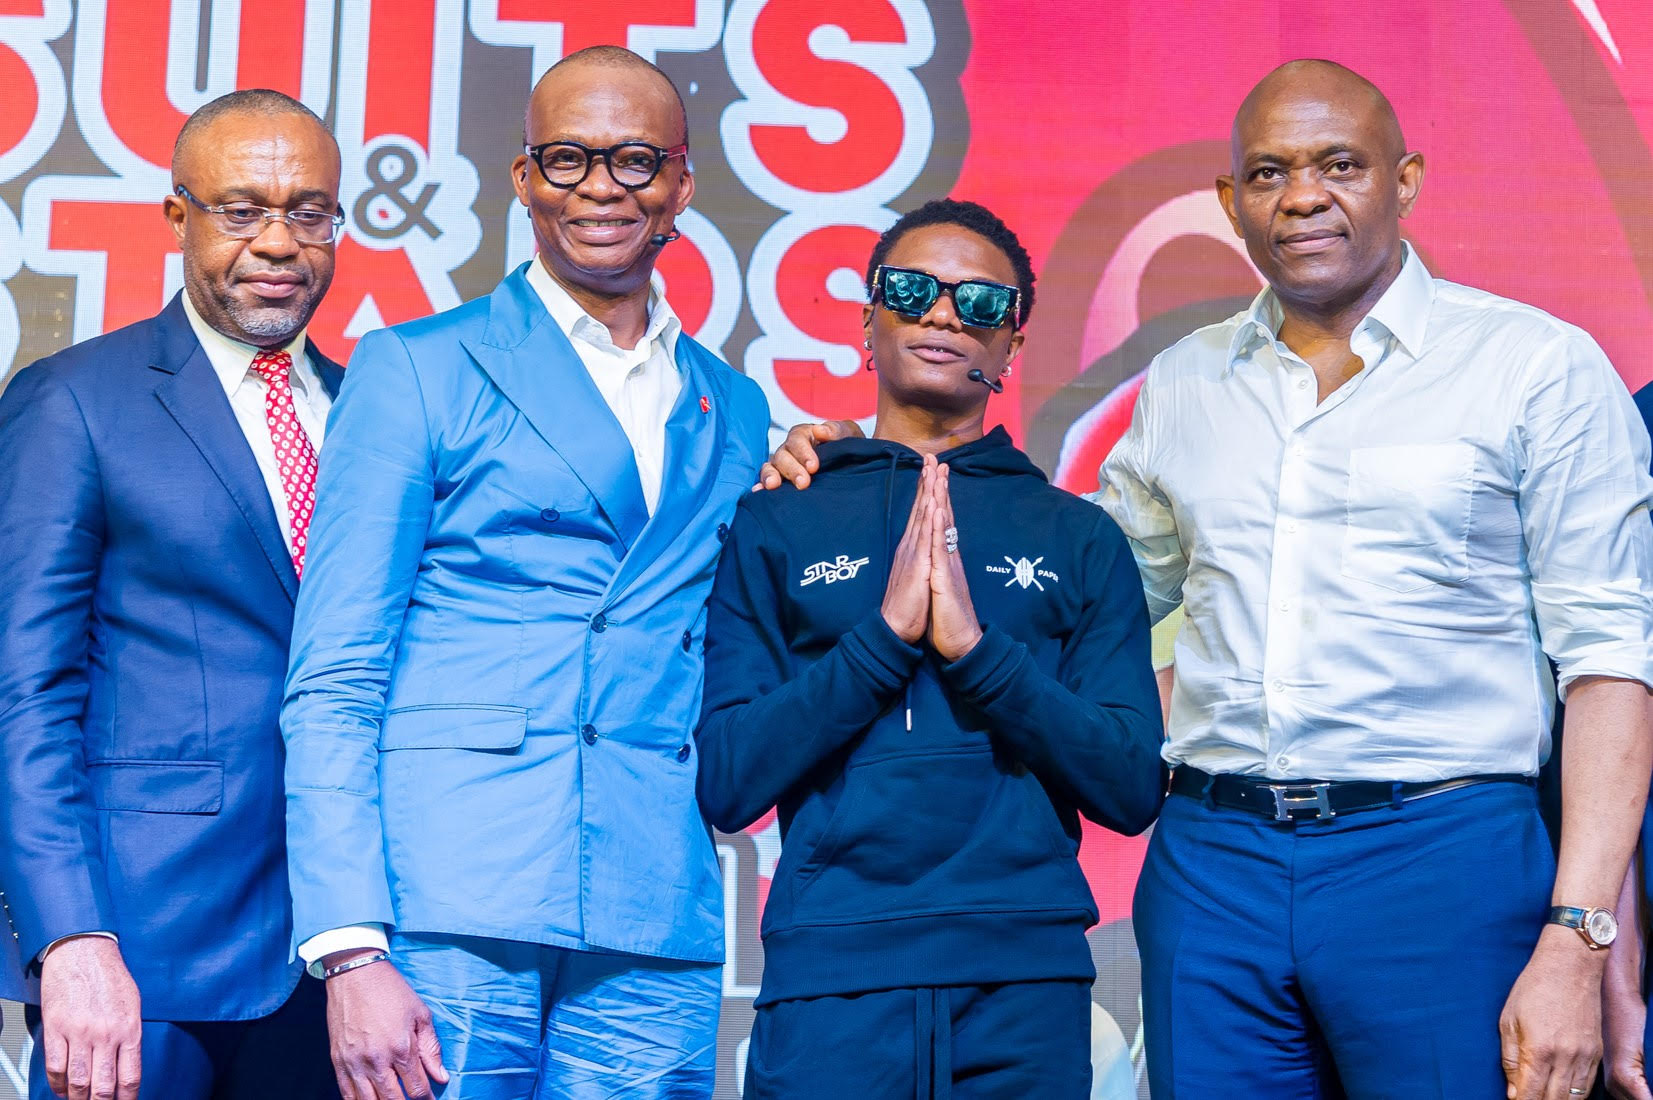 Wizkid And UBA, Set To Launch African's First Music Streaming Platform